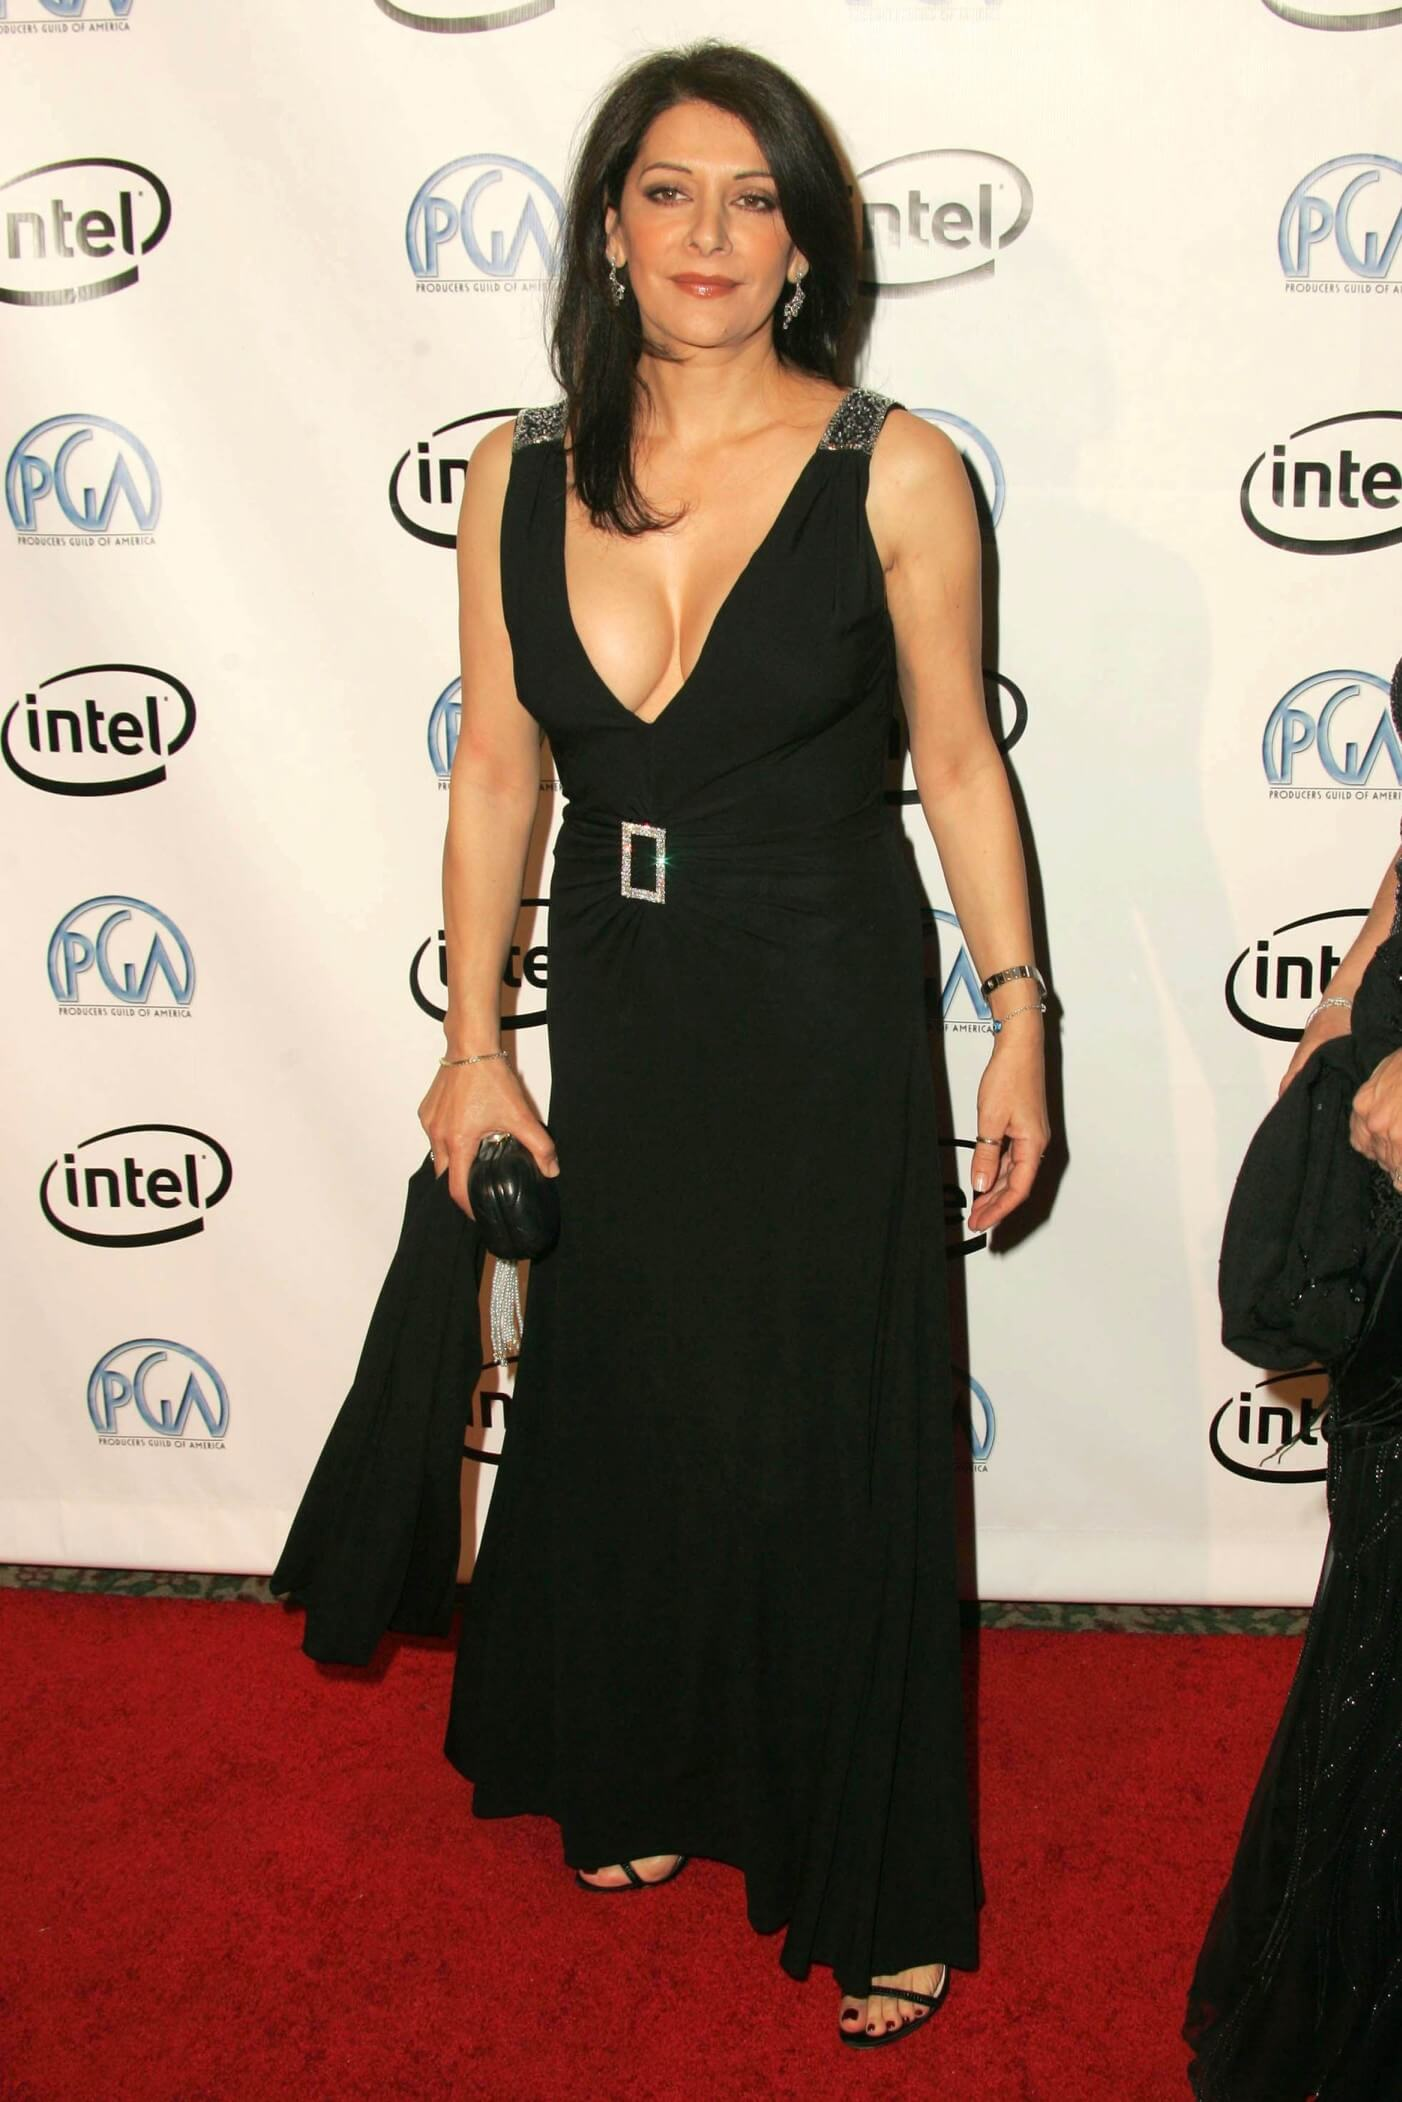 Marina Sirtis long black dress pic